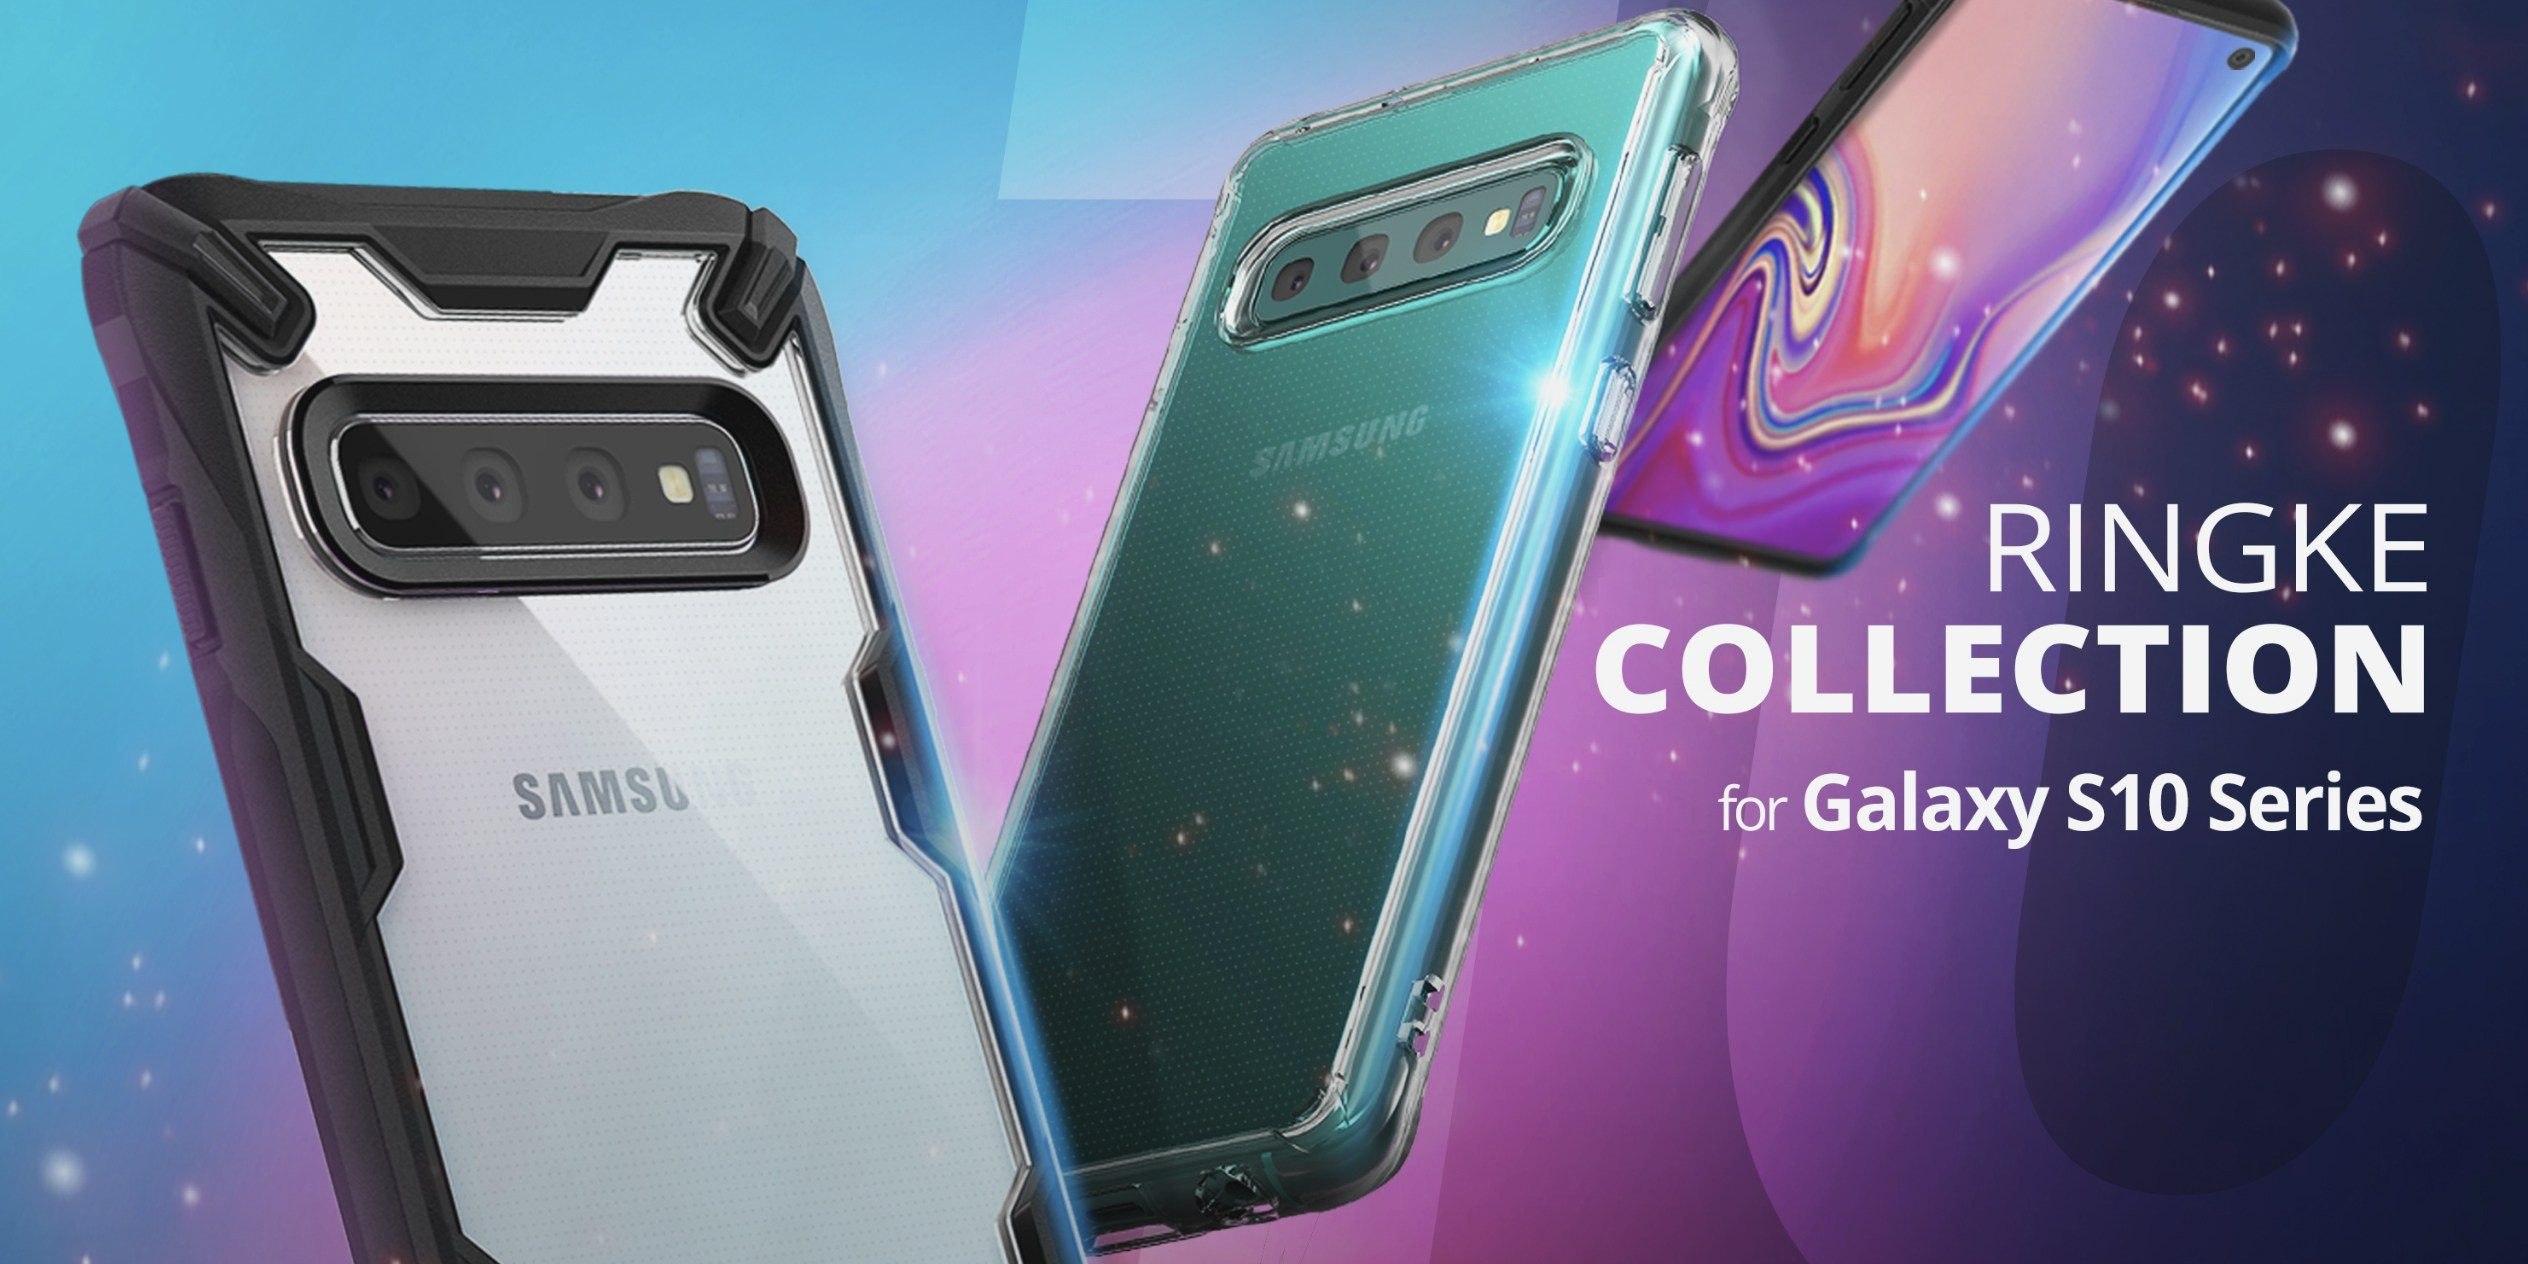 9to5Toys Mittagspause: Galaxy S10 Cases 4 $, Mohu Leaf HDTV-Antenne 13 $, Smart Fire TV Edition HDTV 100 $, mehr